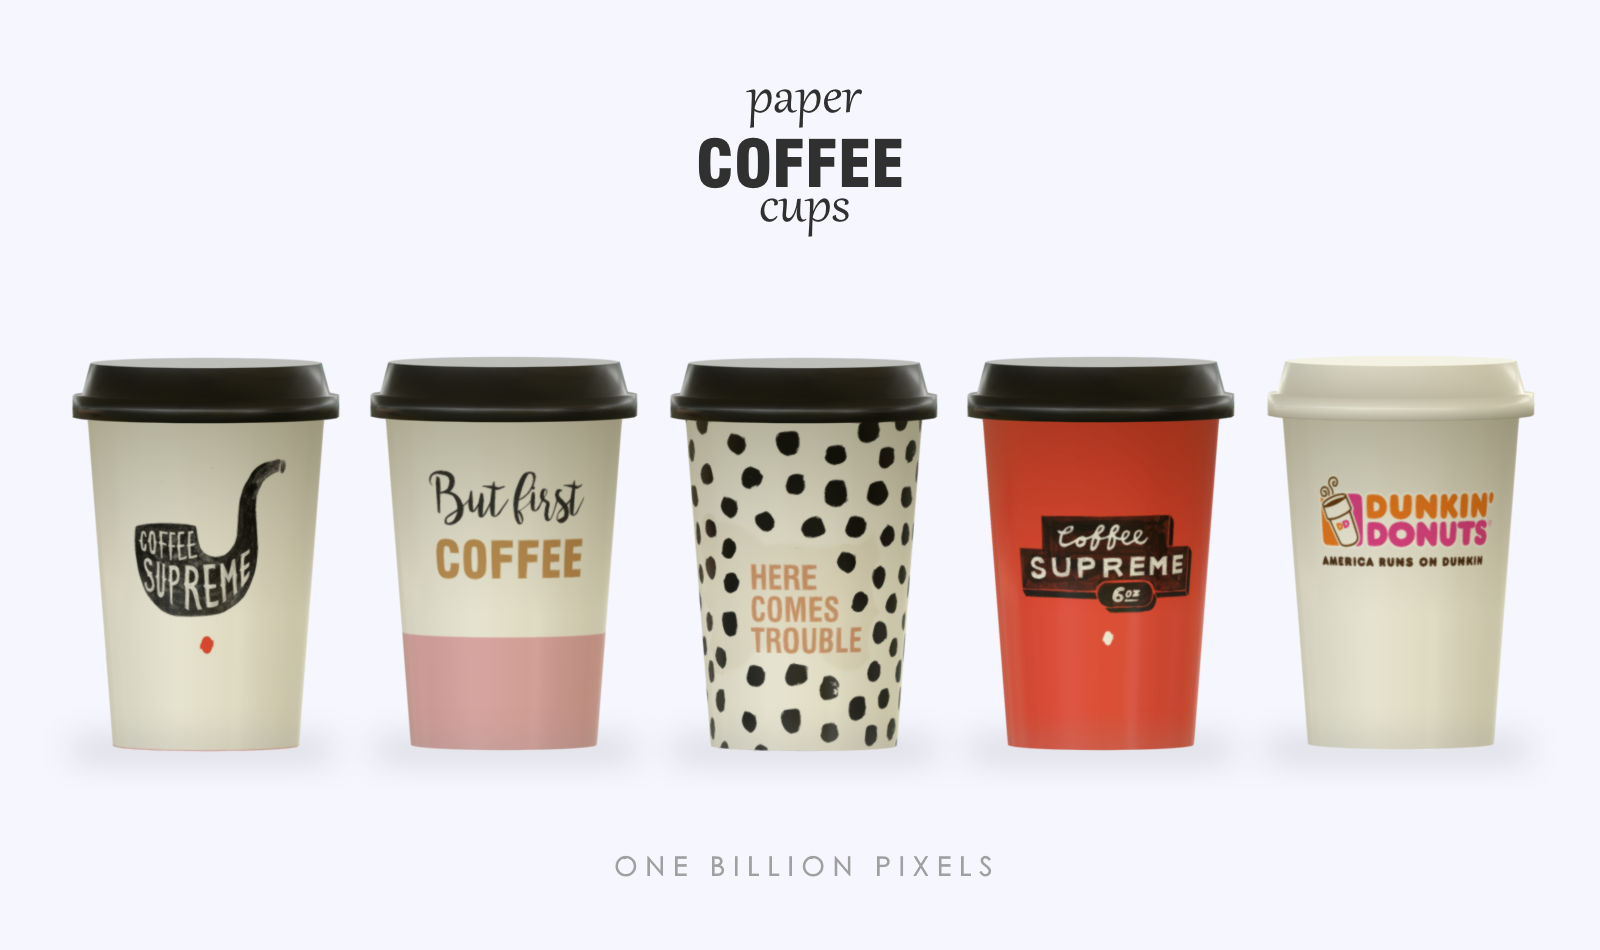 paper coffee cups the sims 4 one billion pixels. Black Bedroom Furniture Sets. Home Design Ideas